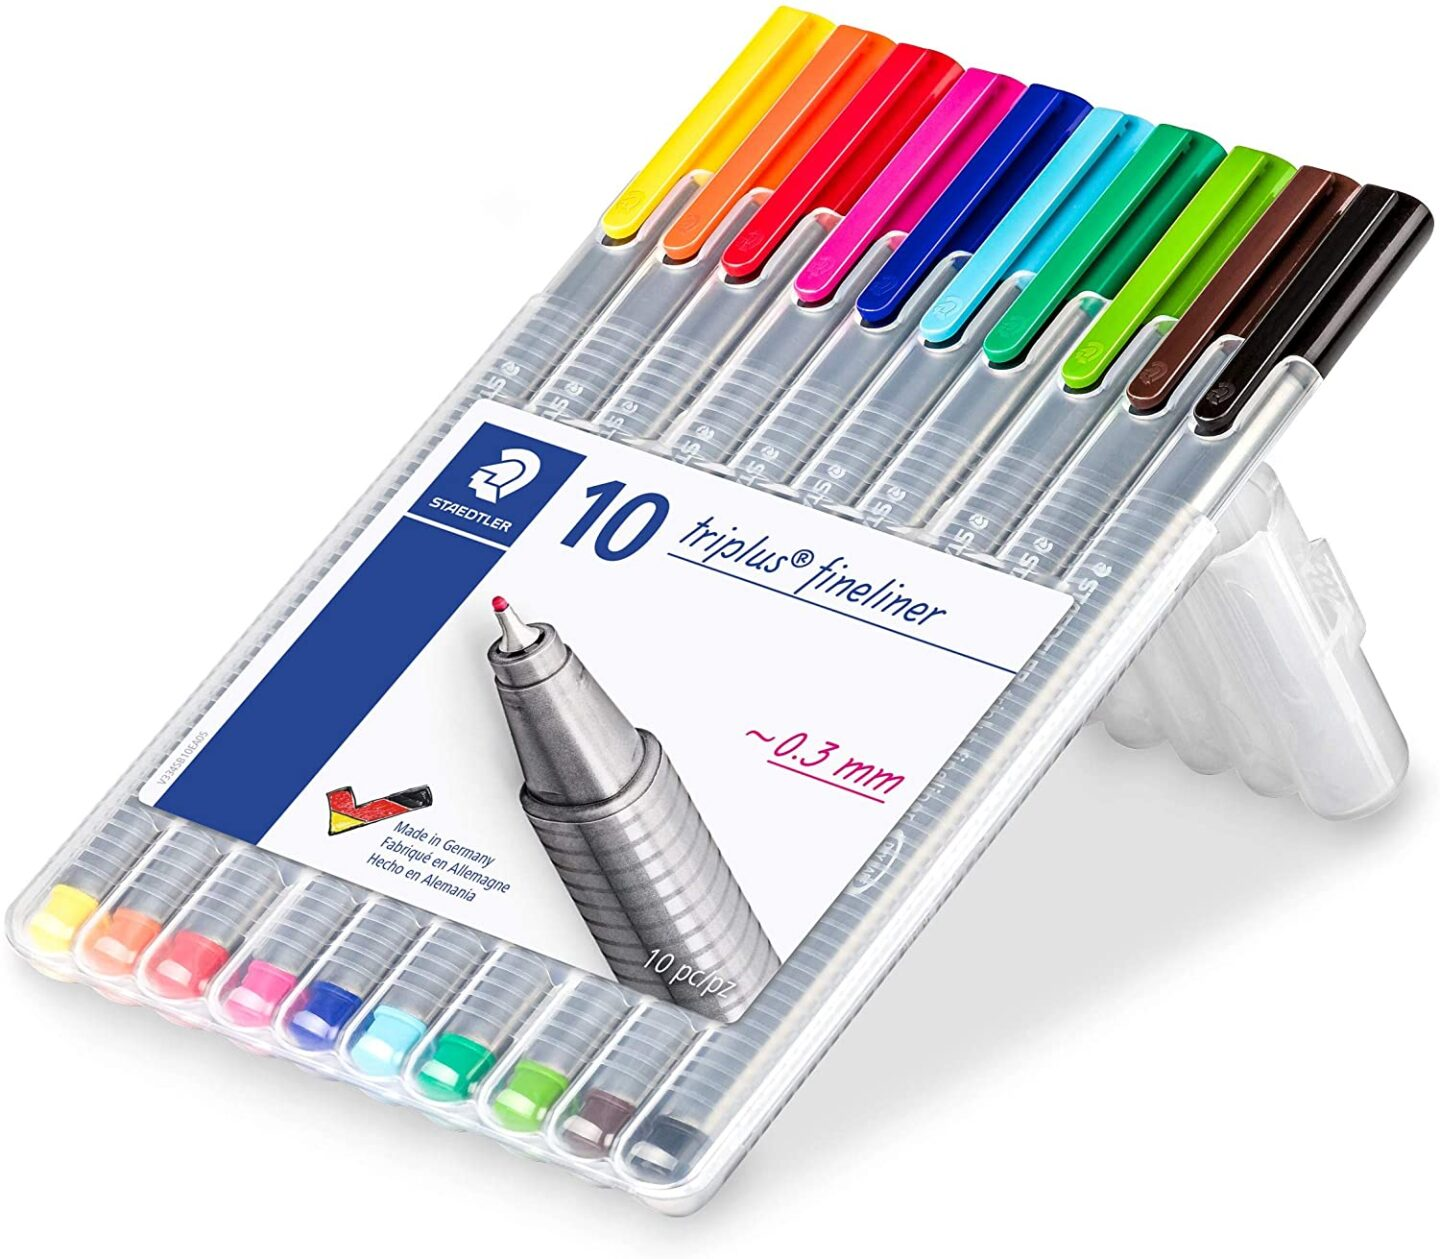 You can't go wrong with colored pens if you're looking for bullet journal gift ideas